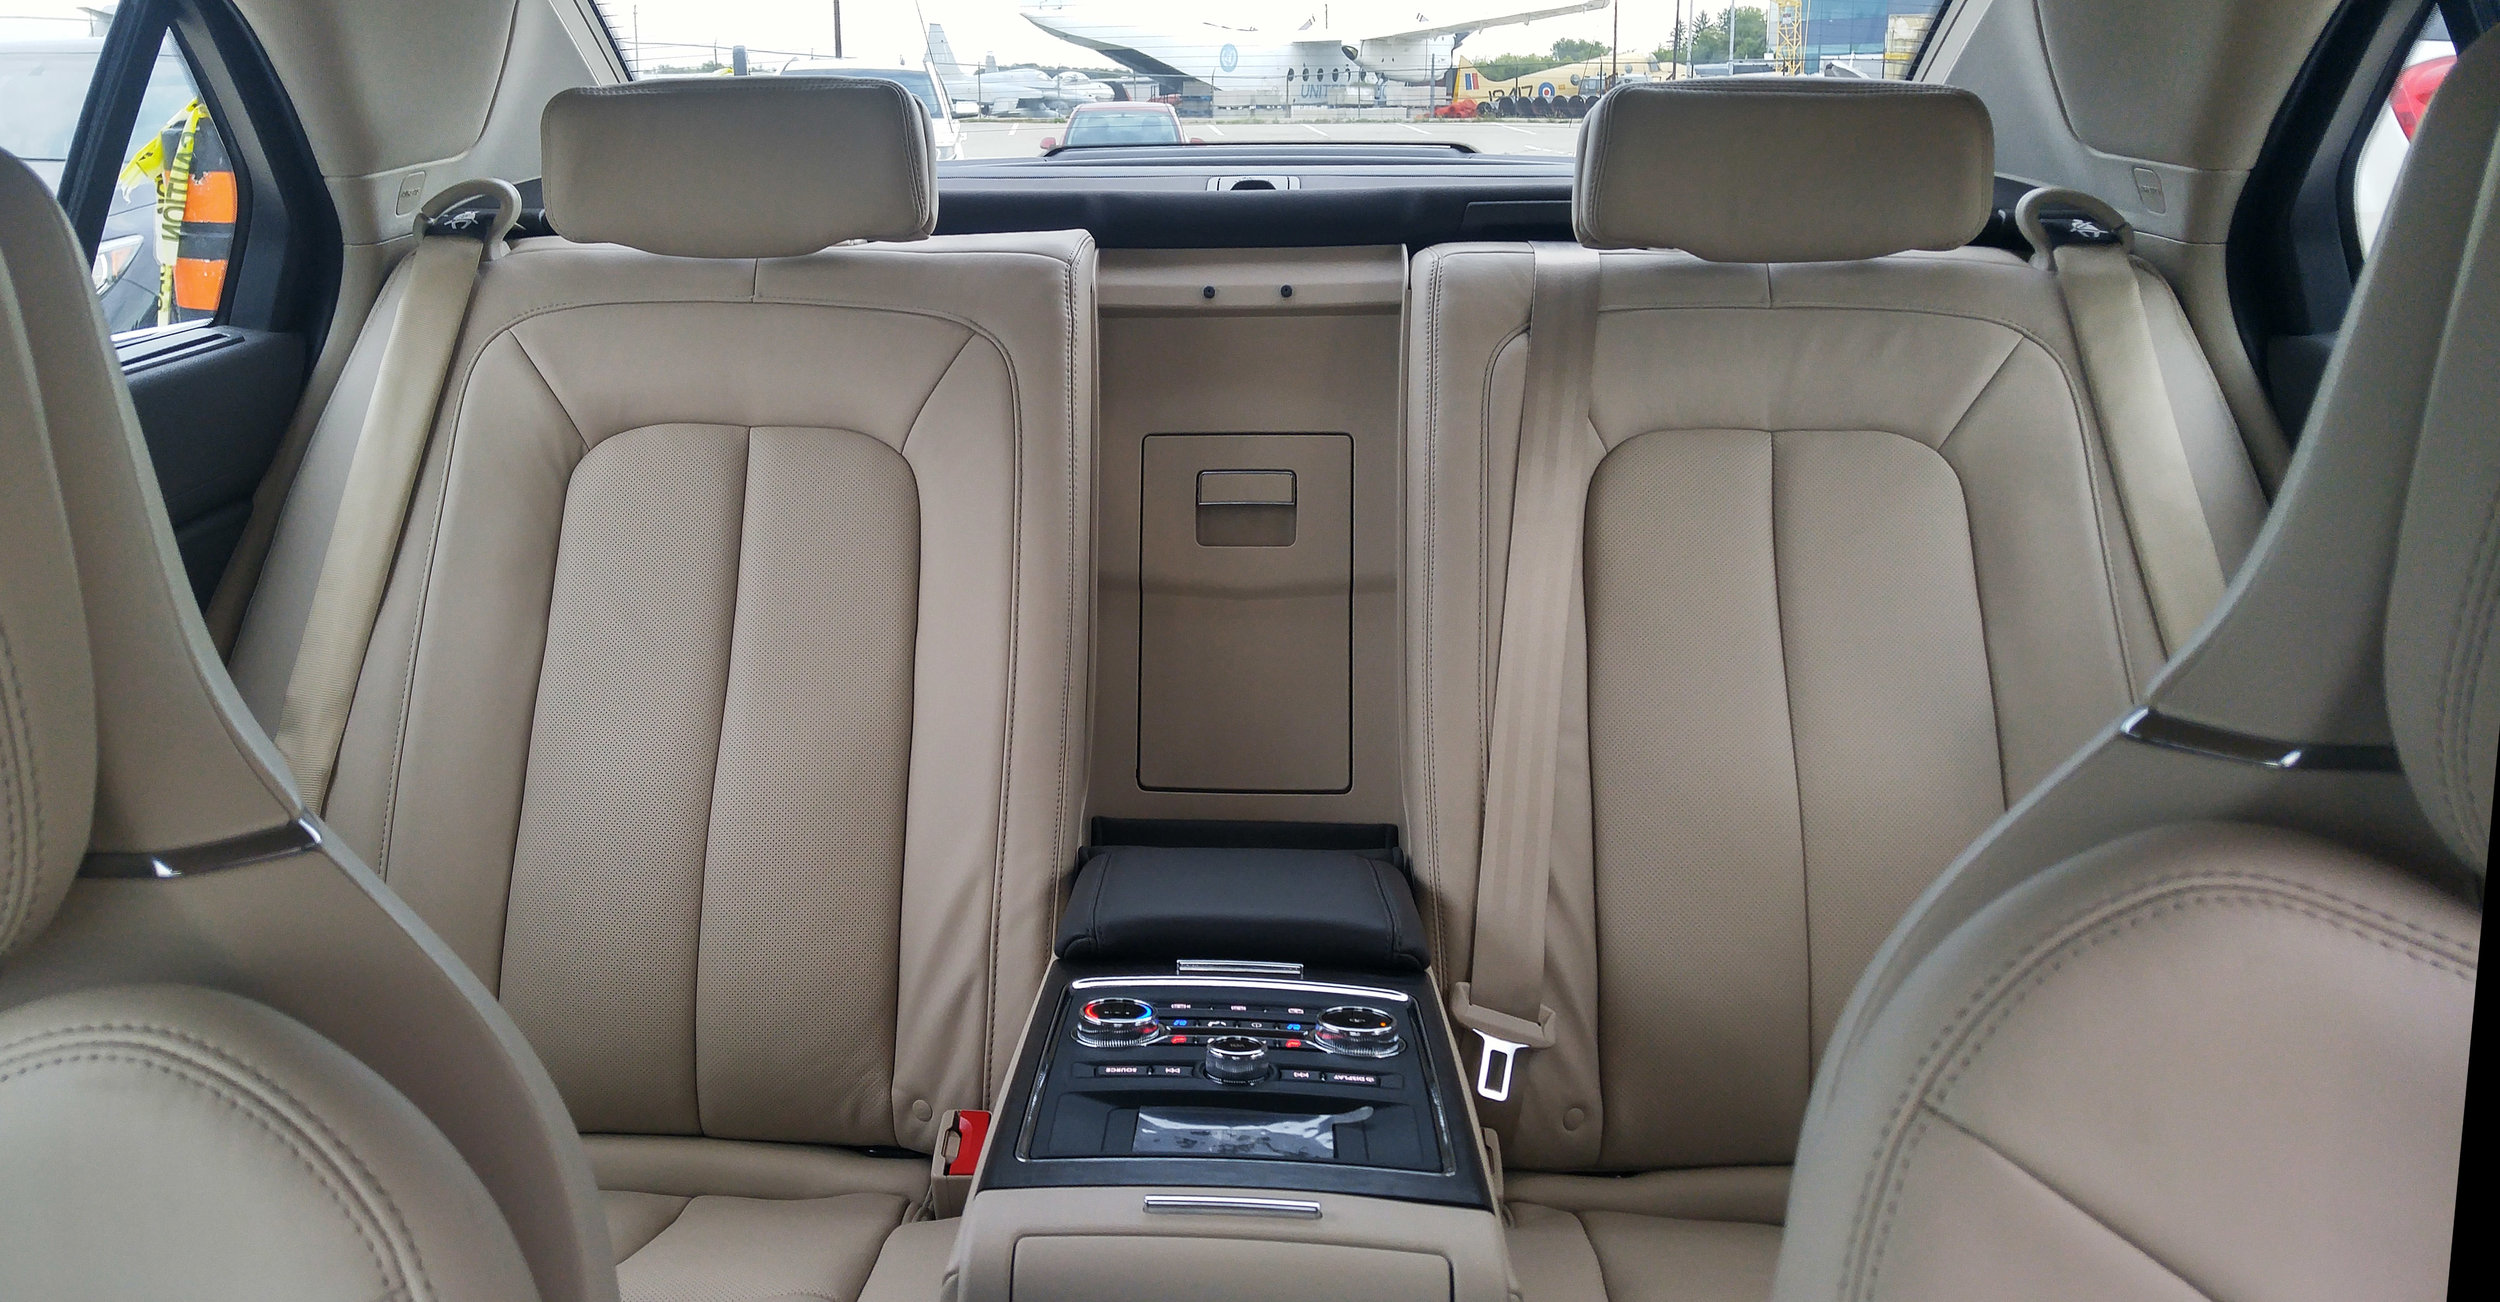 The Rear Seat Package includes a full-function audio and climate control panel with an LCD display.